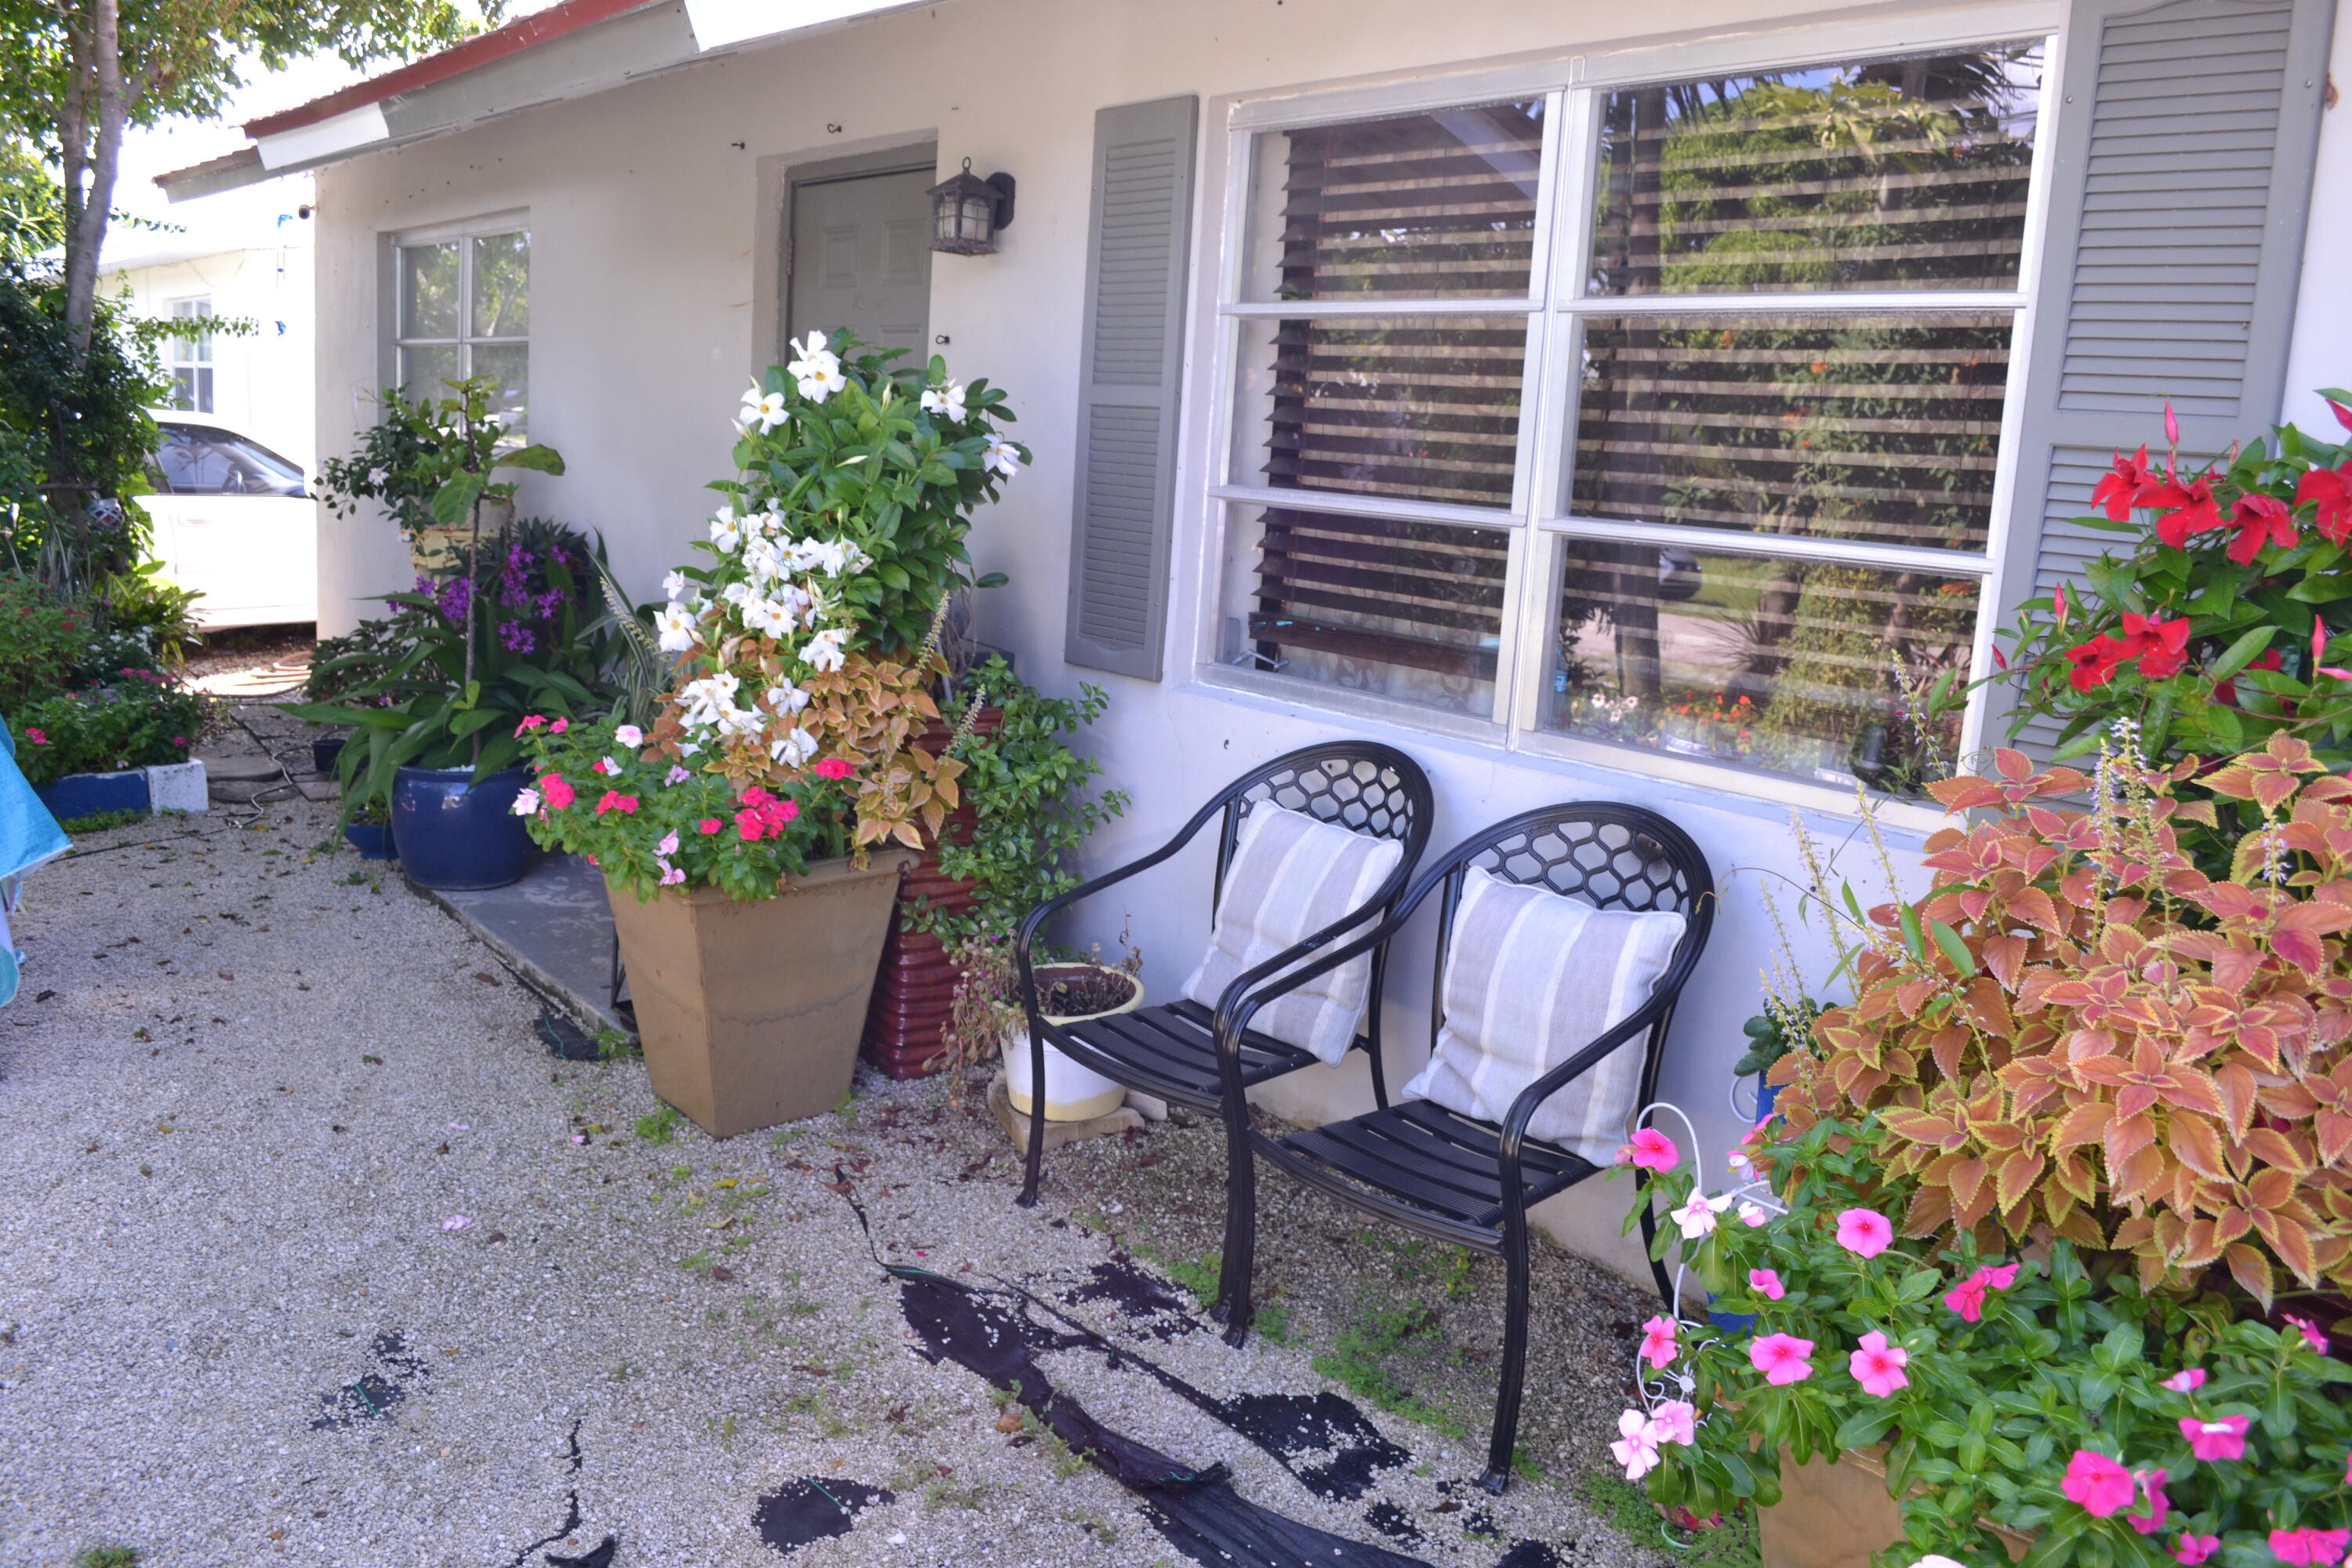 3 bedroom, 1 bath CBS home with carport, metal roof just one year old and a beautiful green backyard in the heart of Jupiter. Tenant in place and would like to stay.Great investment